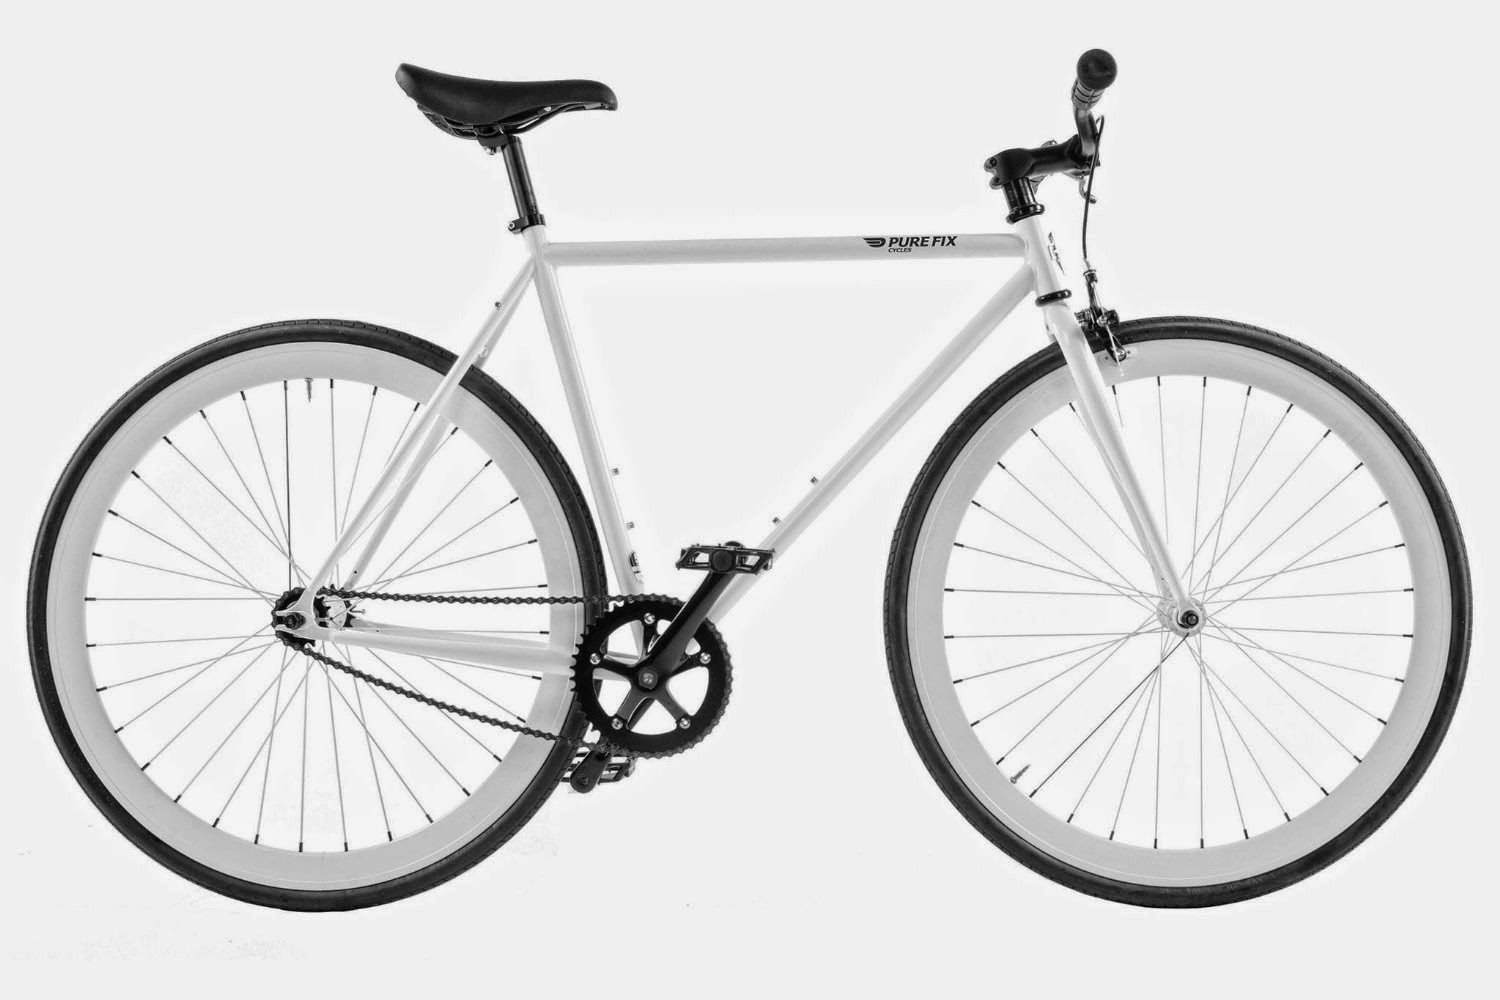 Pure Fix Cycles Glow in the Dark Fixed Gear Single Speed Urban Fixie Bike, review, lightweight, comfortable ride, stands out from the crowd